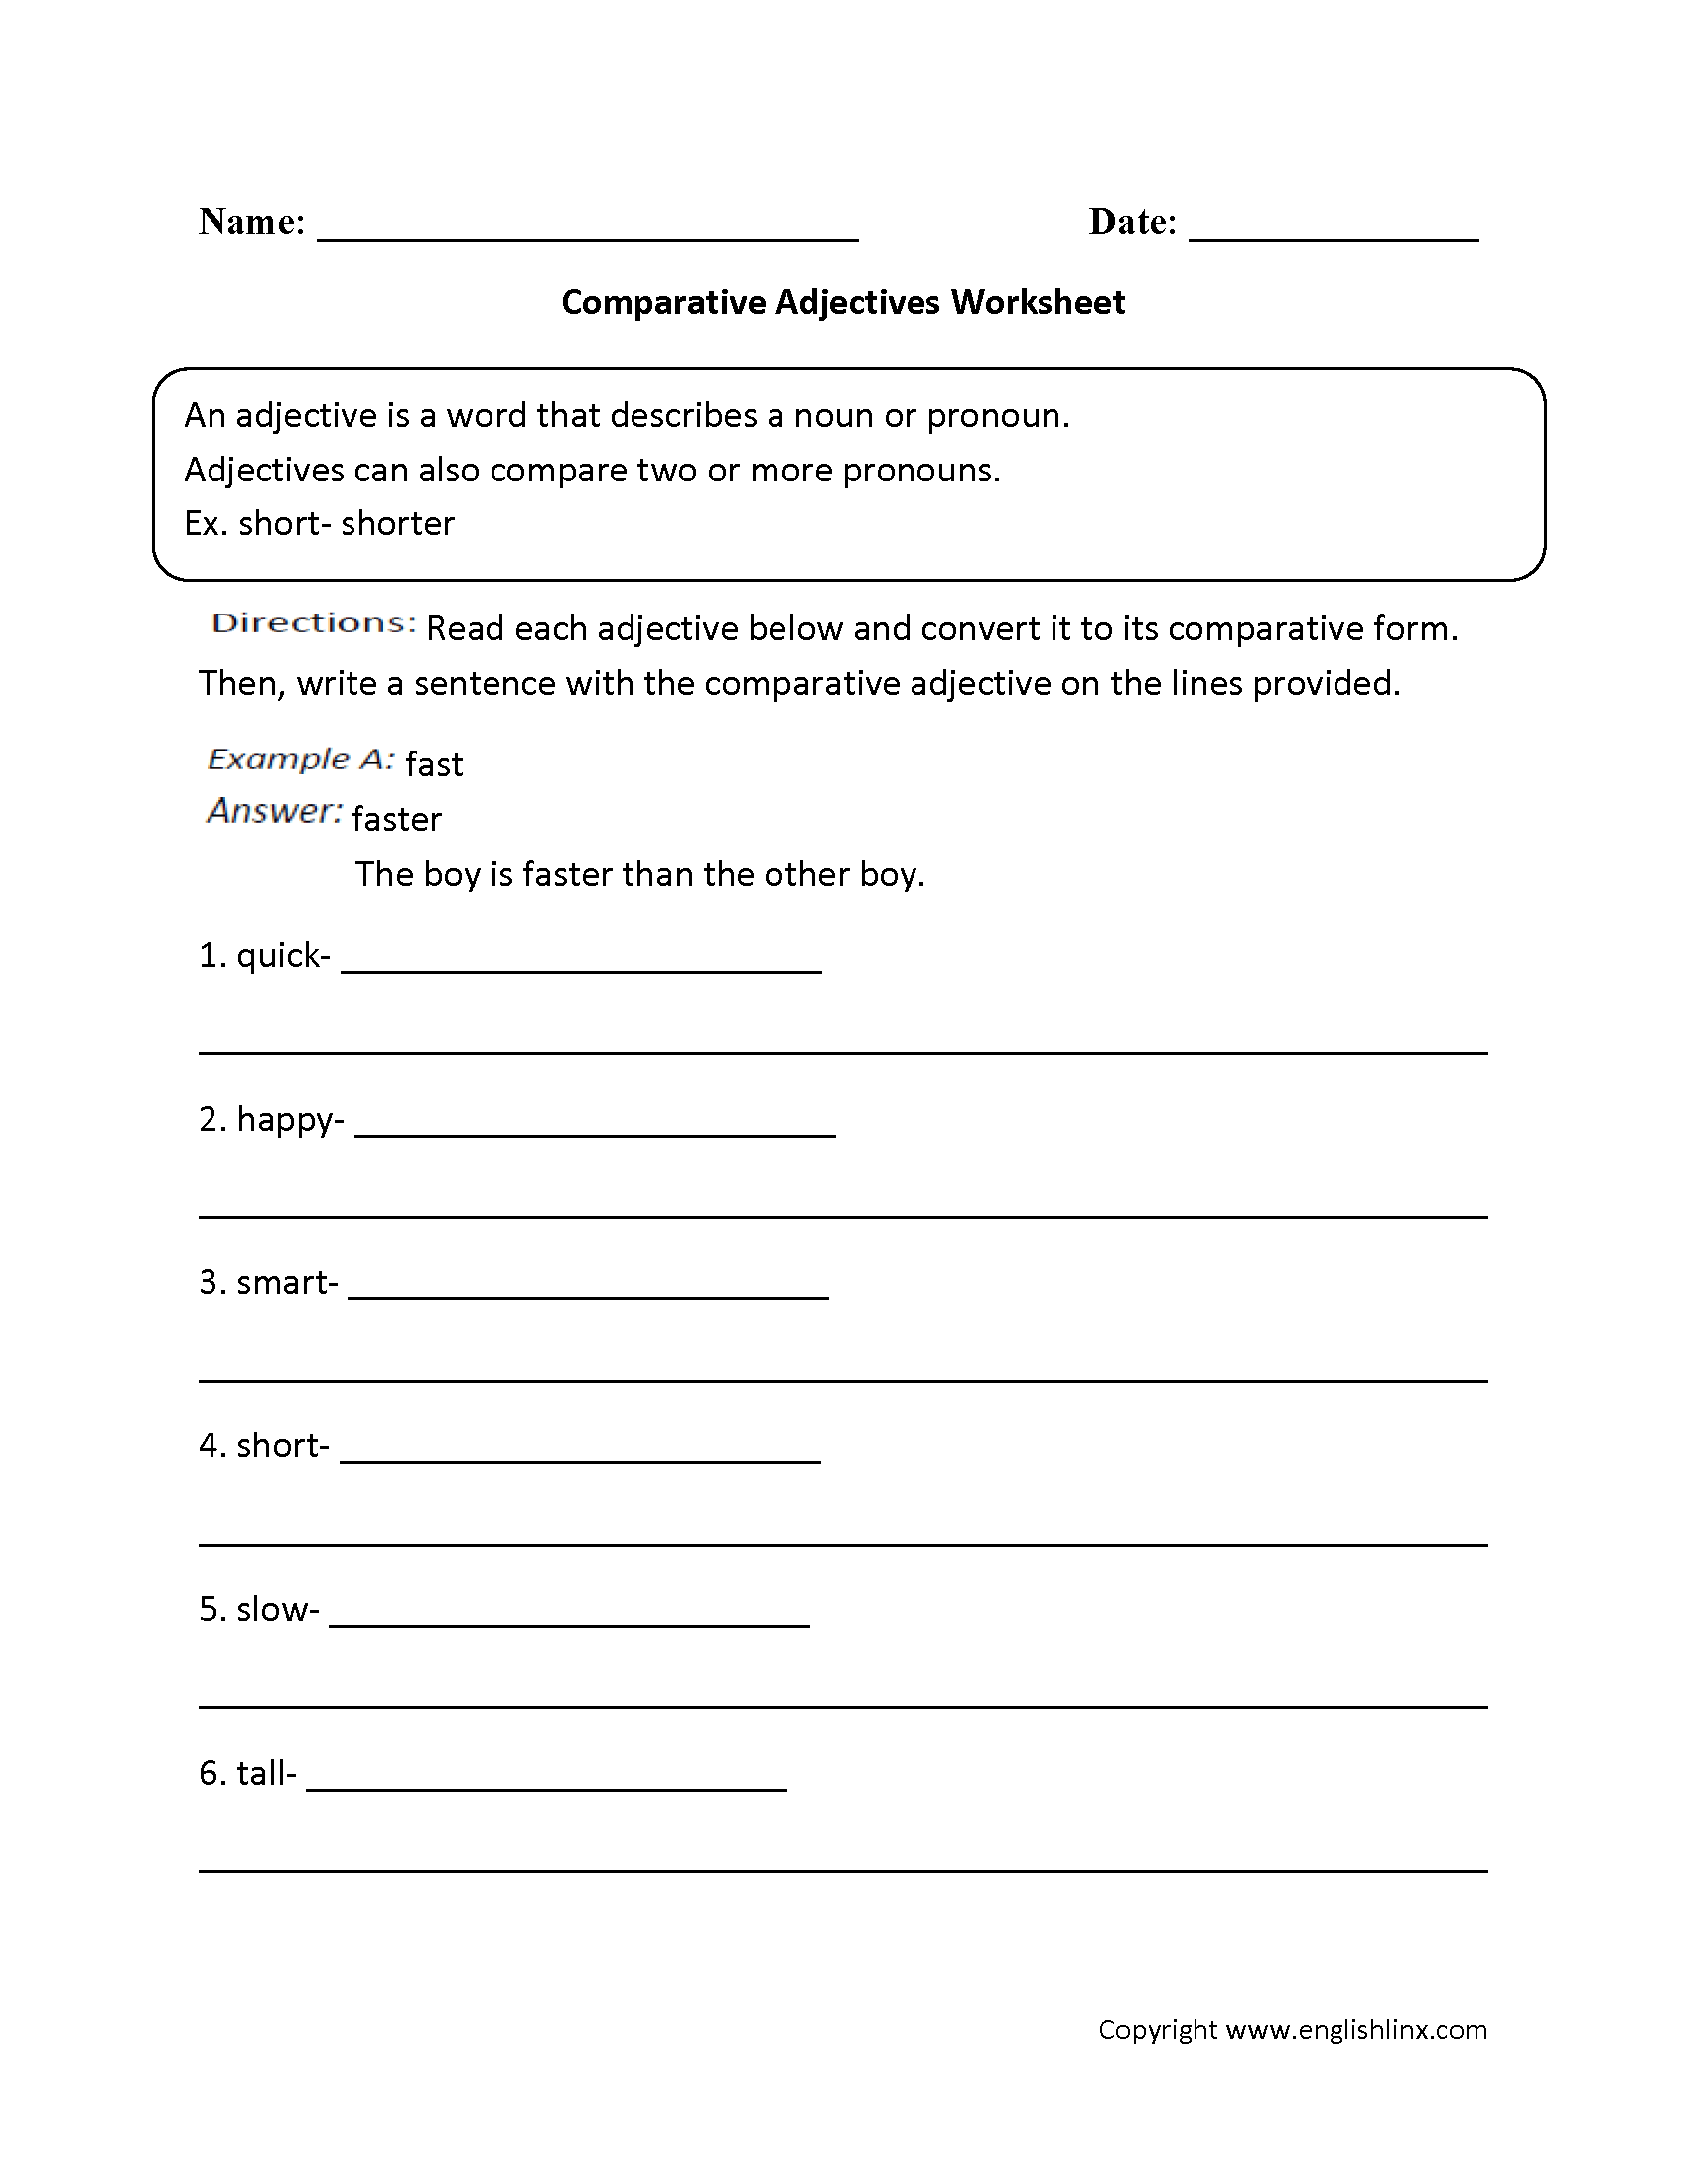 Comparative Adjectives Worksheets 4th Grade